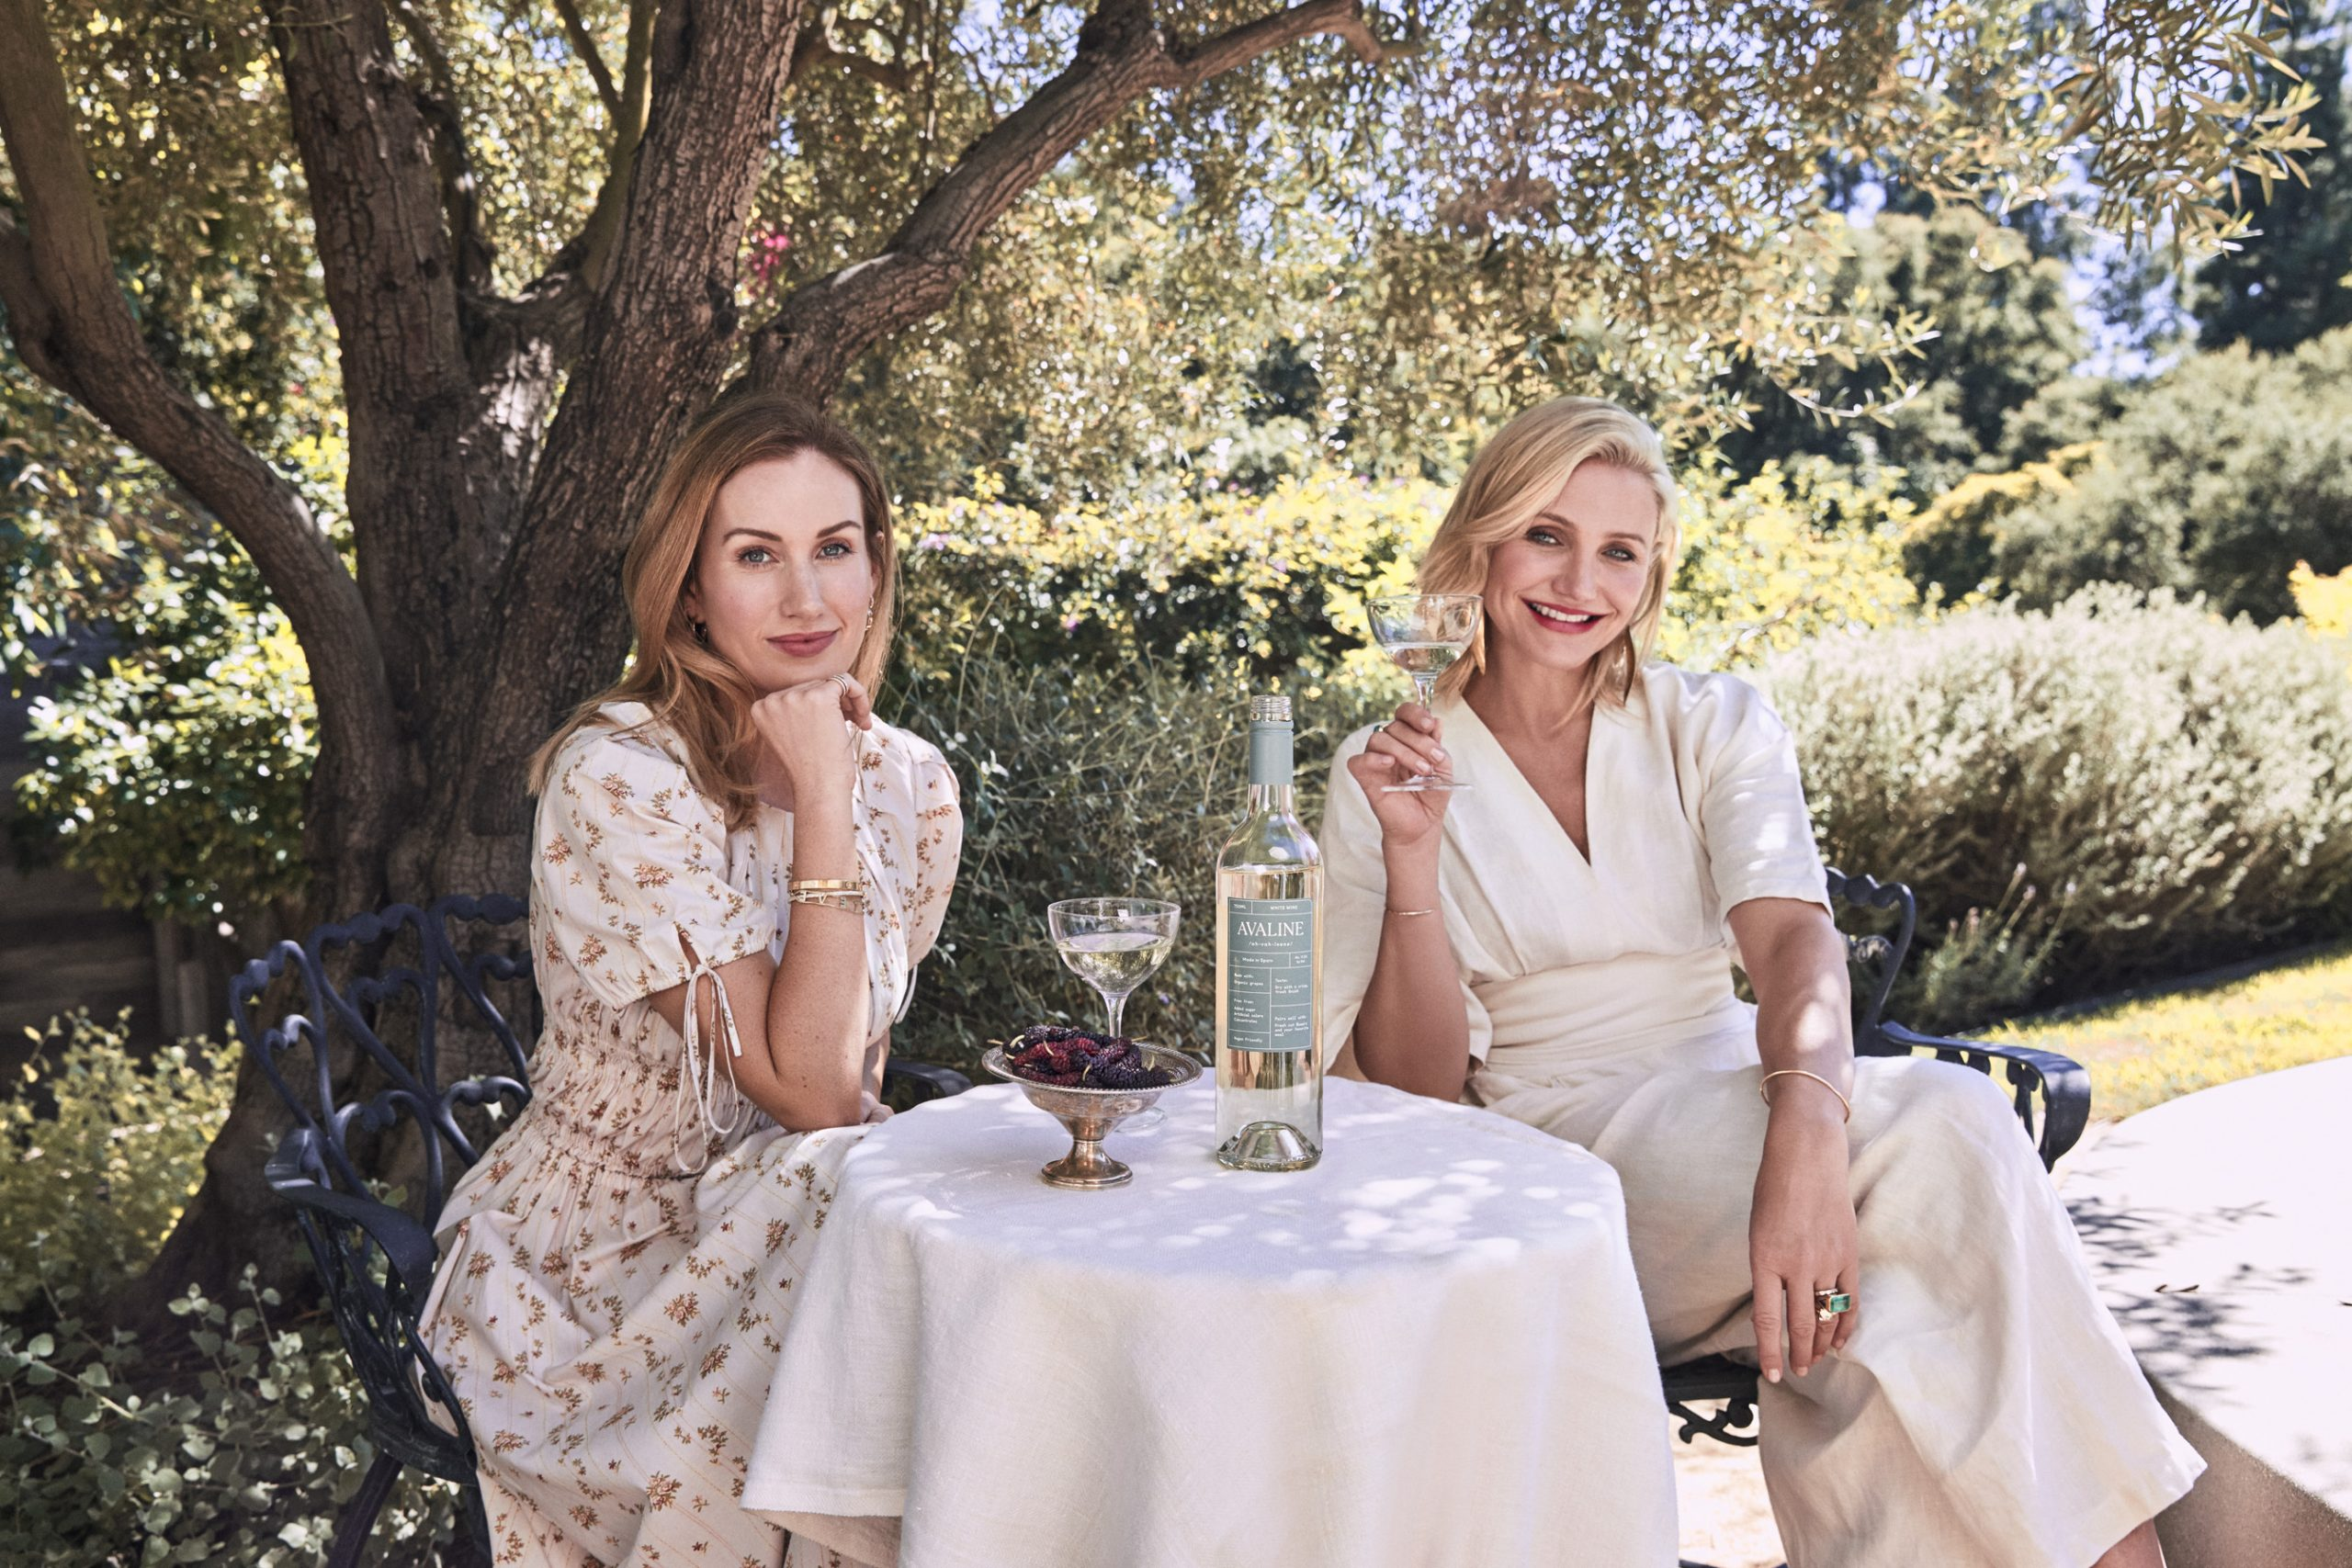 """Cameron Diaz's new """"clean wine"""" gets slammed by survey - The Drinks Business"""